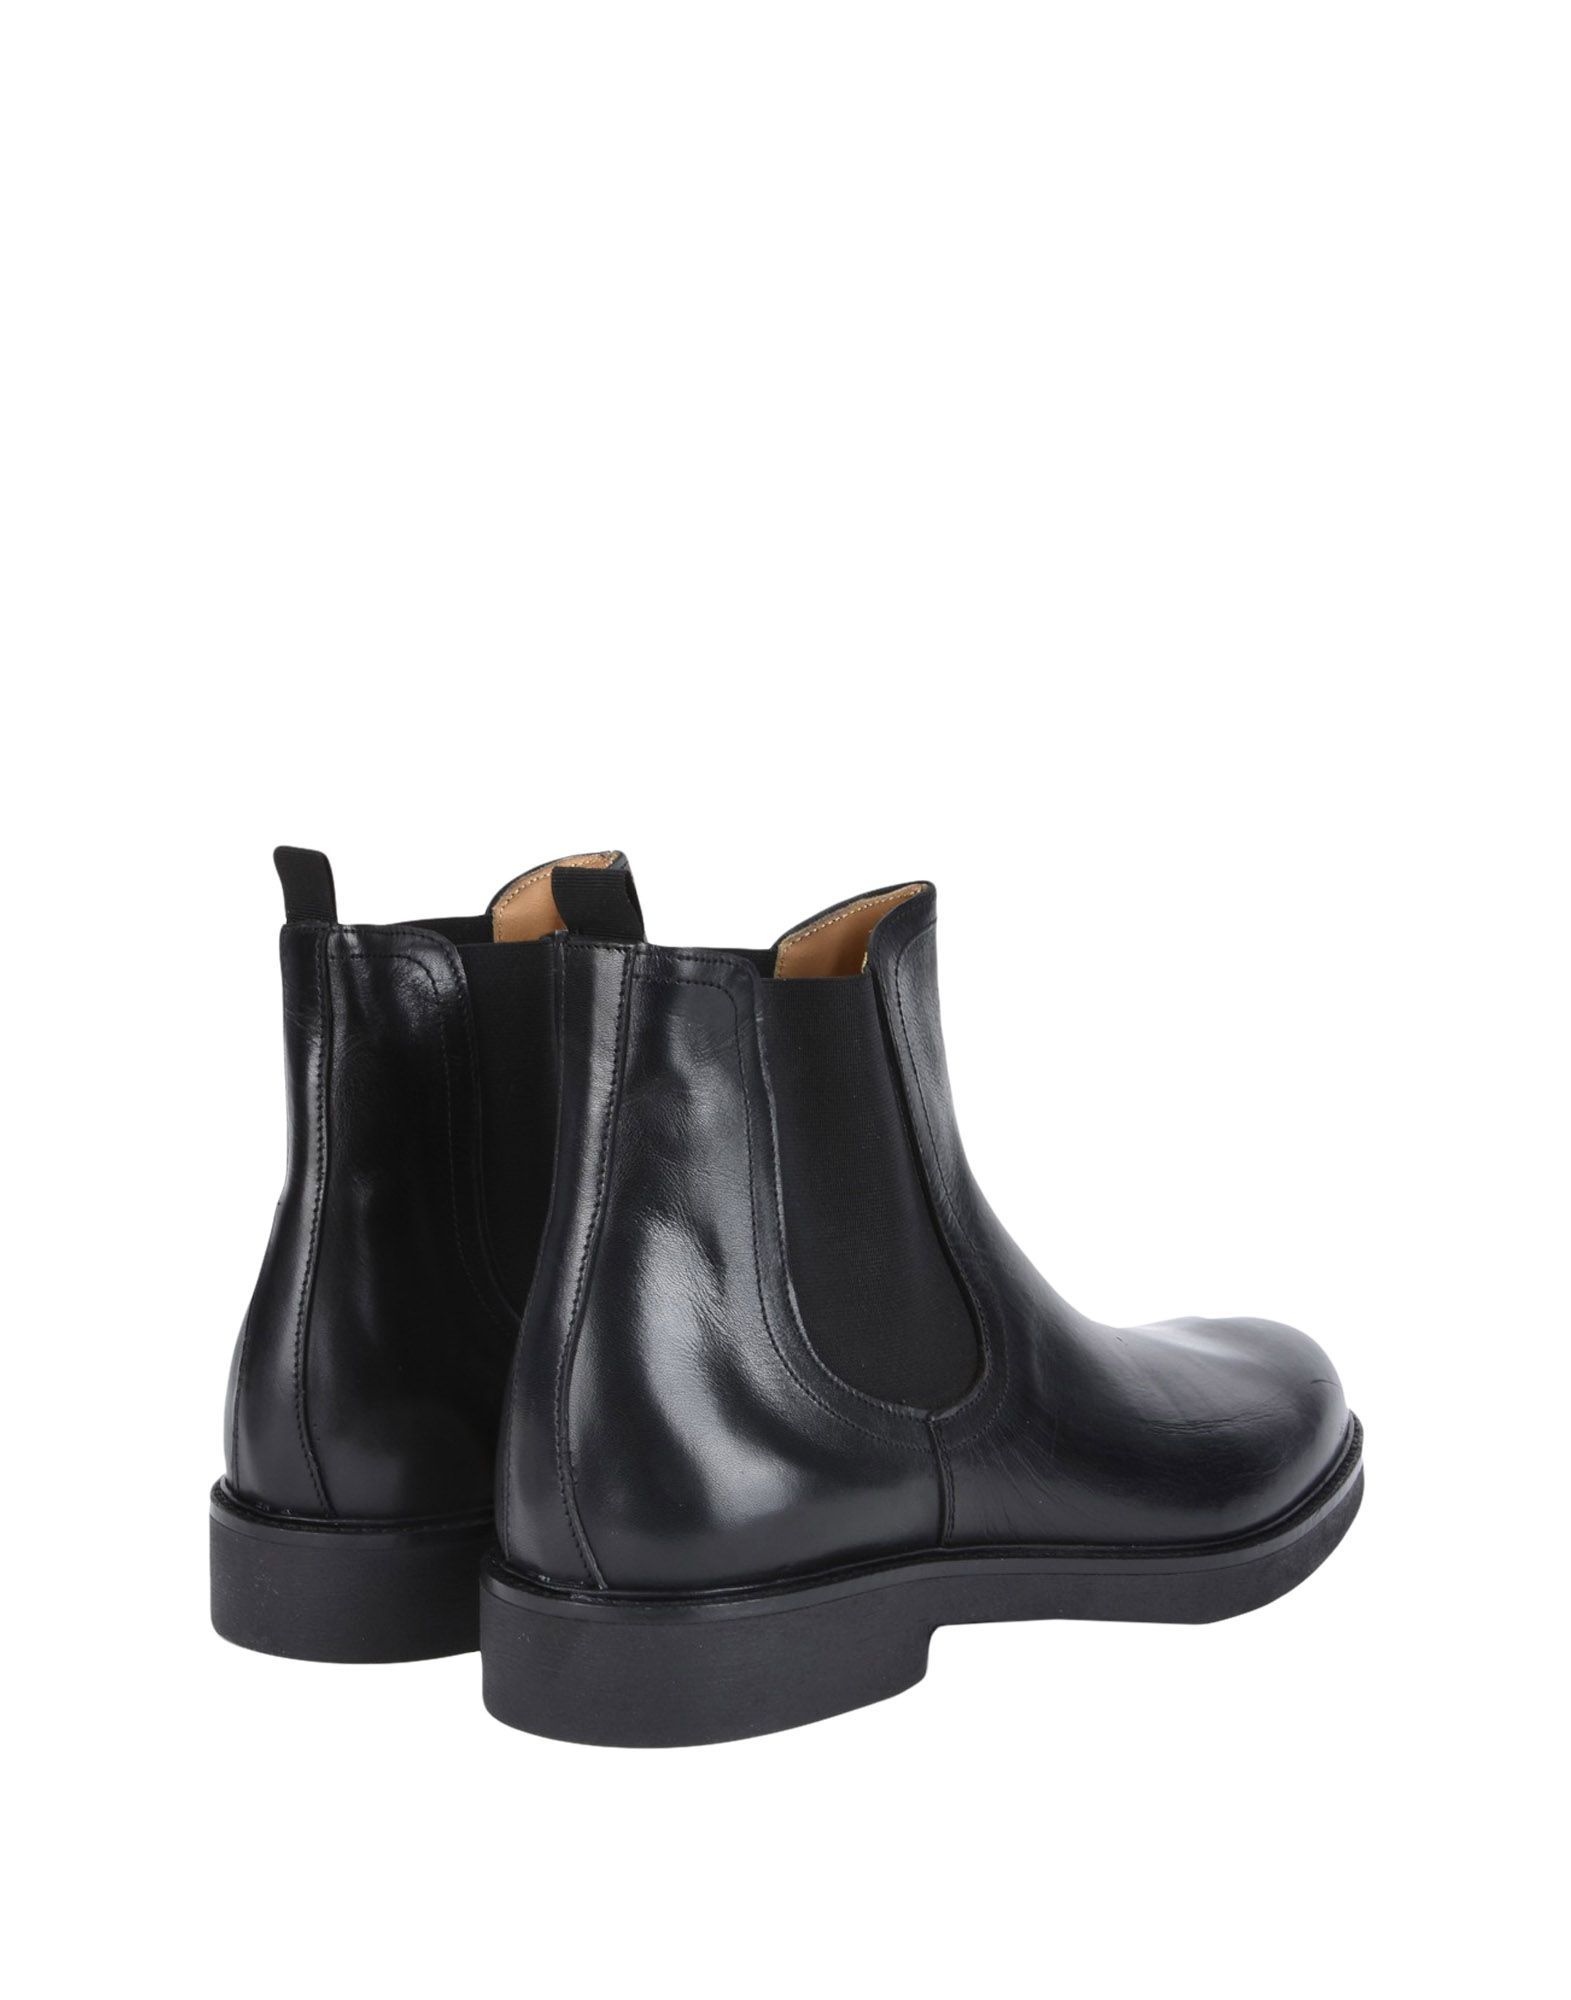 Bottine 8 Homme - Bottines 8 sur